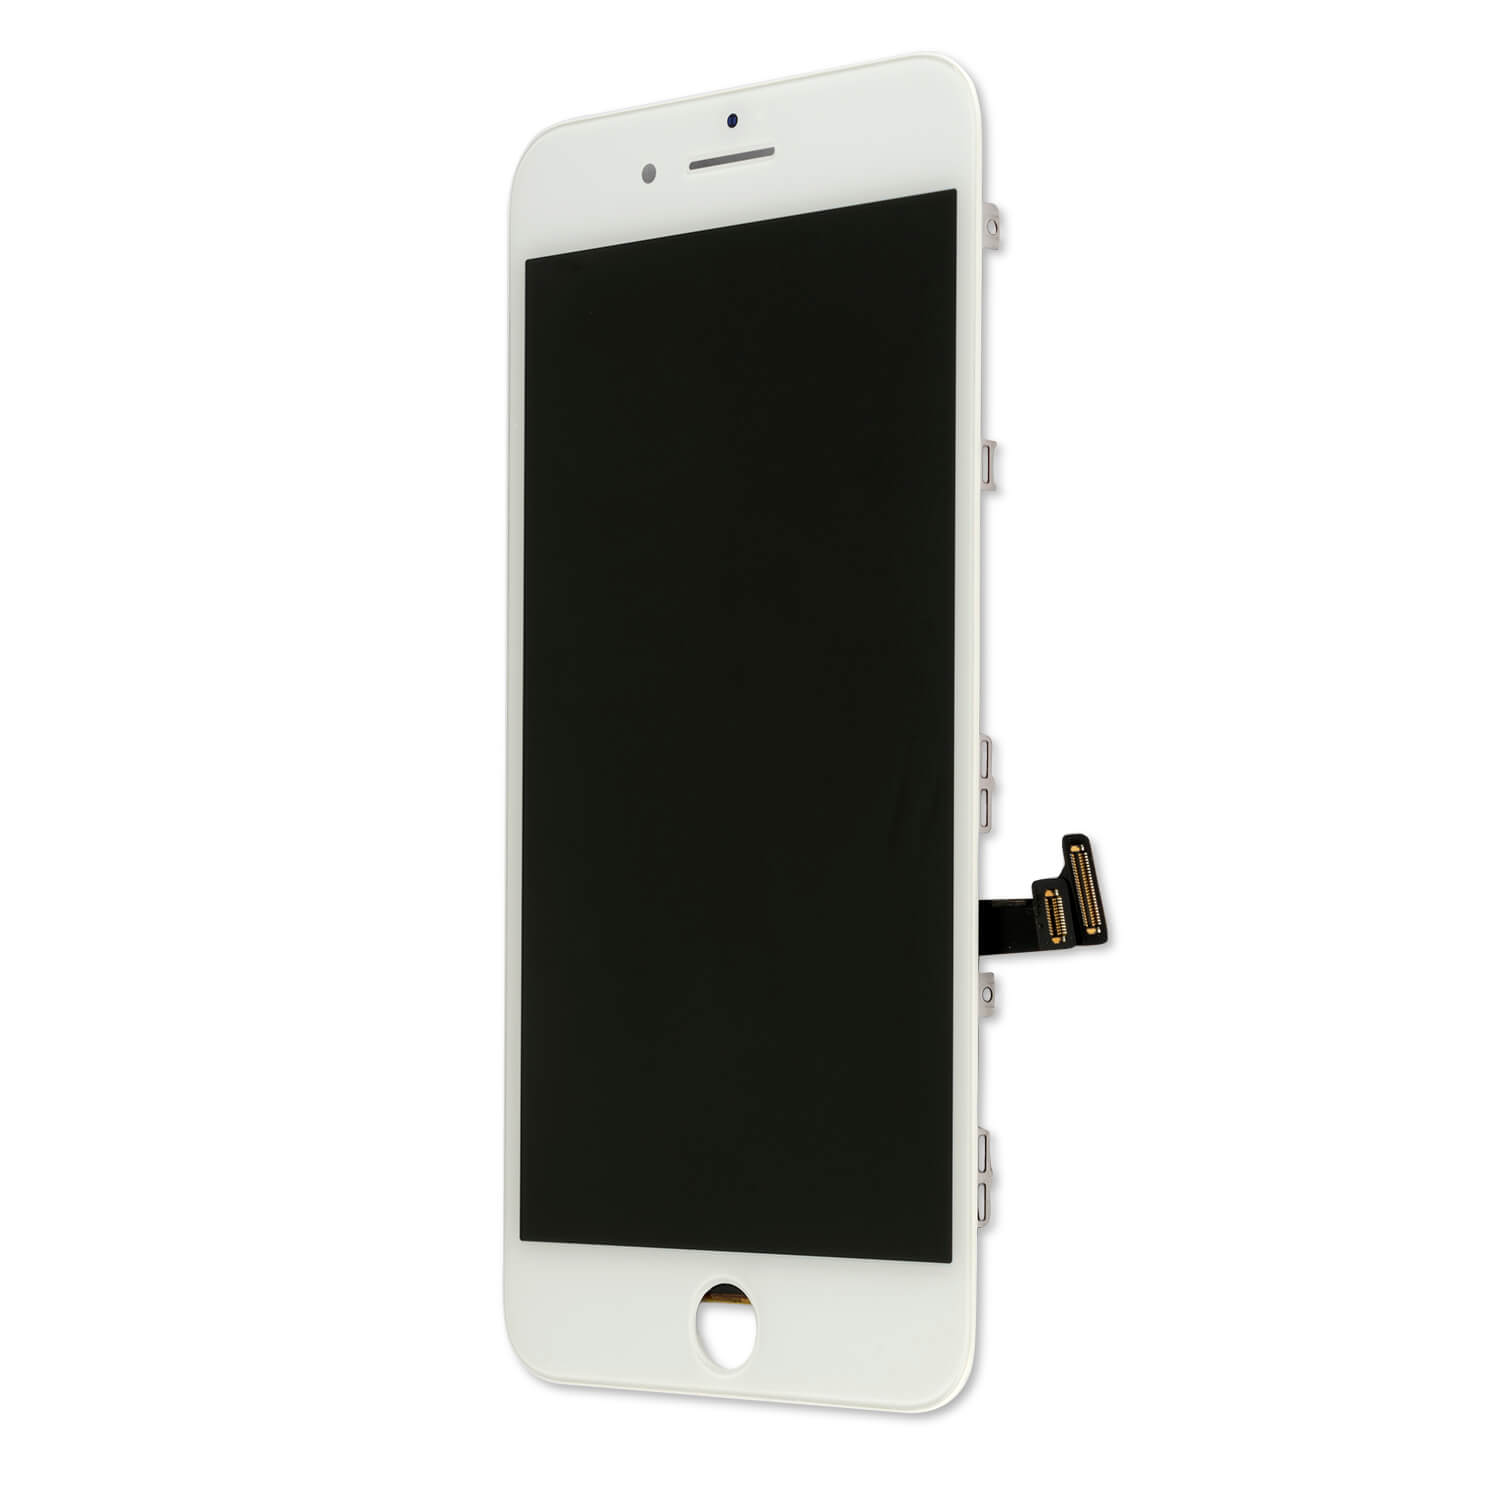 Apple Display Unit for iPhone 7 Plus (white)